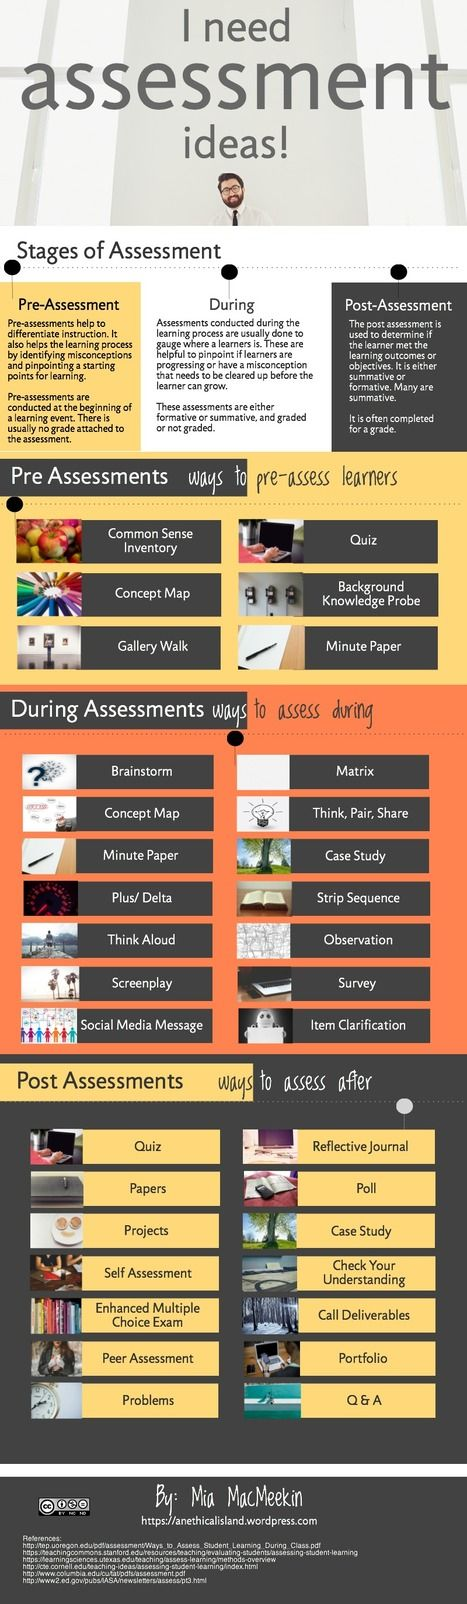 Assessment Ideas (Infographic) | Digital Delights - Digital Tribes | Scoop.it